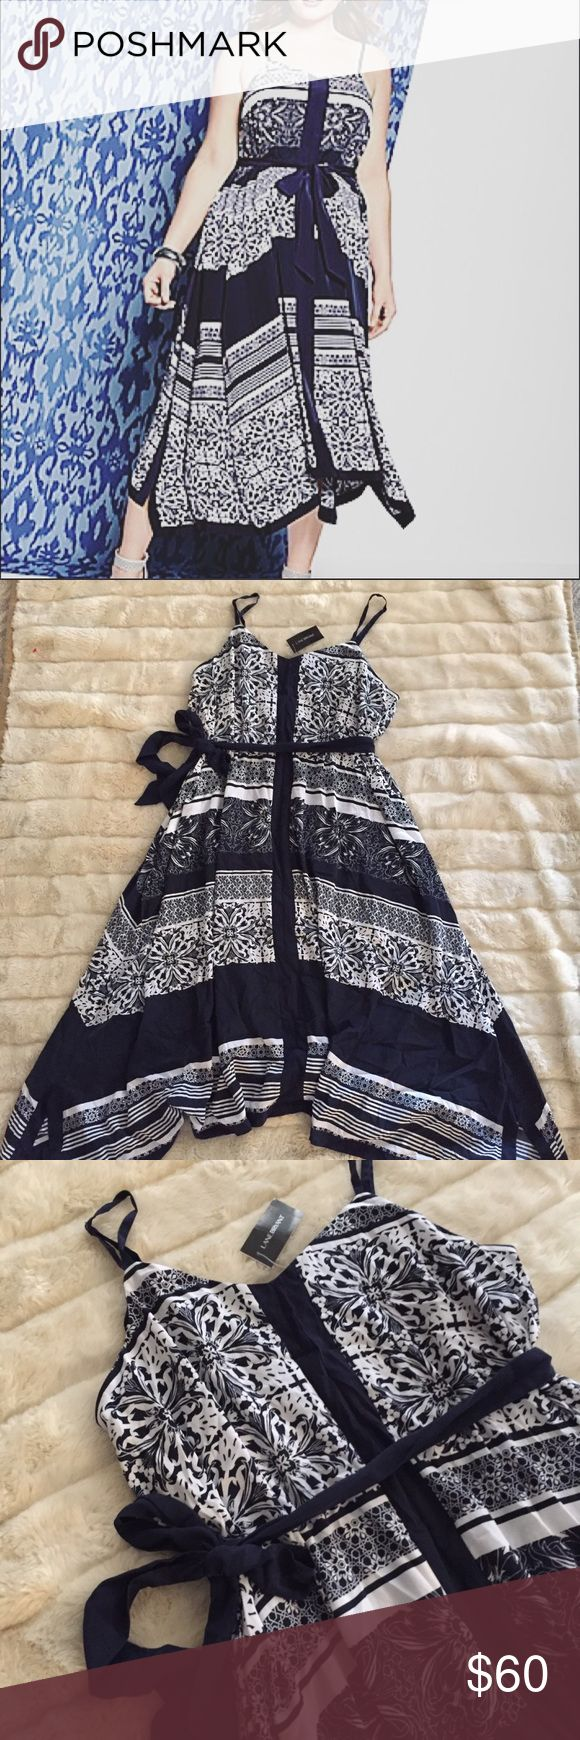 NWT Lane Bryant 14/16 Bandana Dress Maxi Midi Brand new with $89 tags! Navy and white tile/scarf/bandana print dress. Hi-low hemline, midi/maxi skirt. Very flattering print! Perfect spring and summer dress! Can be dressed up for warm weather events, or works great for a casual look!  Set for sunny days in cool blue hues, this silky dress does Boho-chic beautifully in a bandana print with a handkerchief hem. Pull-on style with a self-tie belt to define the fit, with adjustable straps…